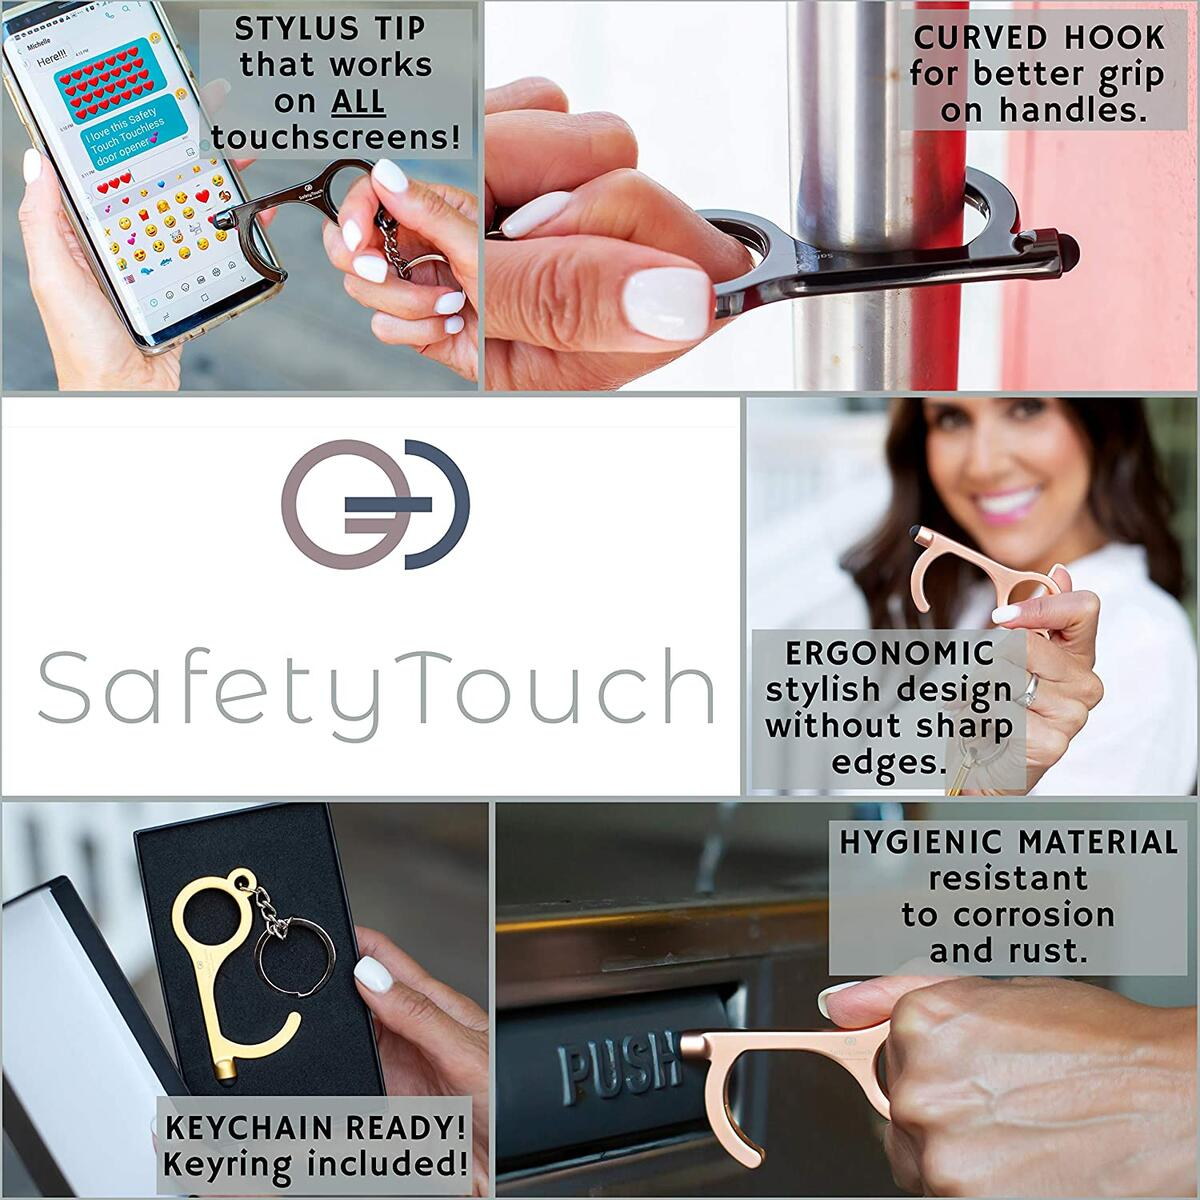 SafetyTouch Touch Free Door Opener Tool. JET BLACK Hygiene Hand for Keychain w Stylus. Clean, No Germ Non Contact for Opening Handle, Touching Screens, Key Pads, Button Pusher. Antimicrobial Hand Tool